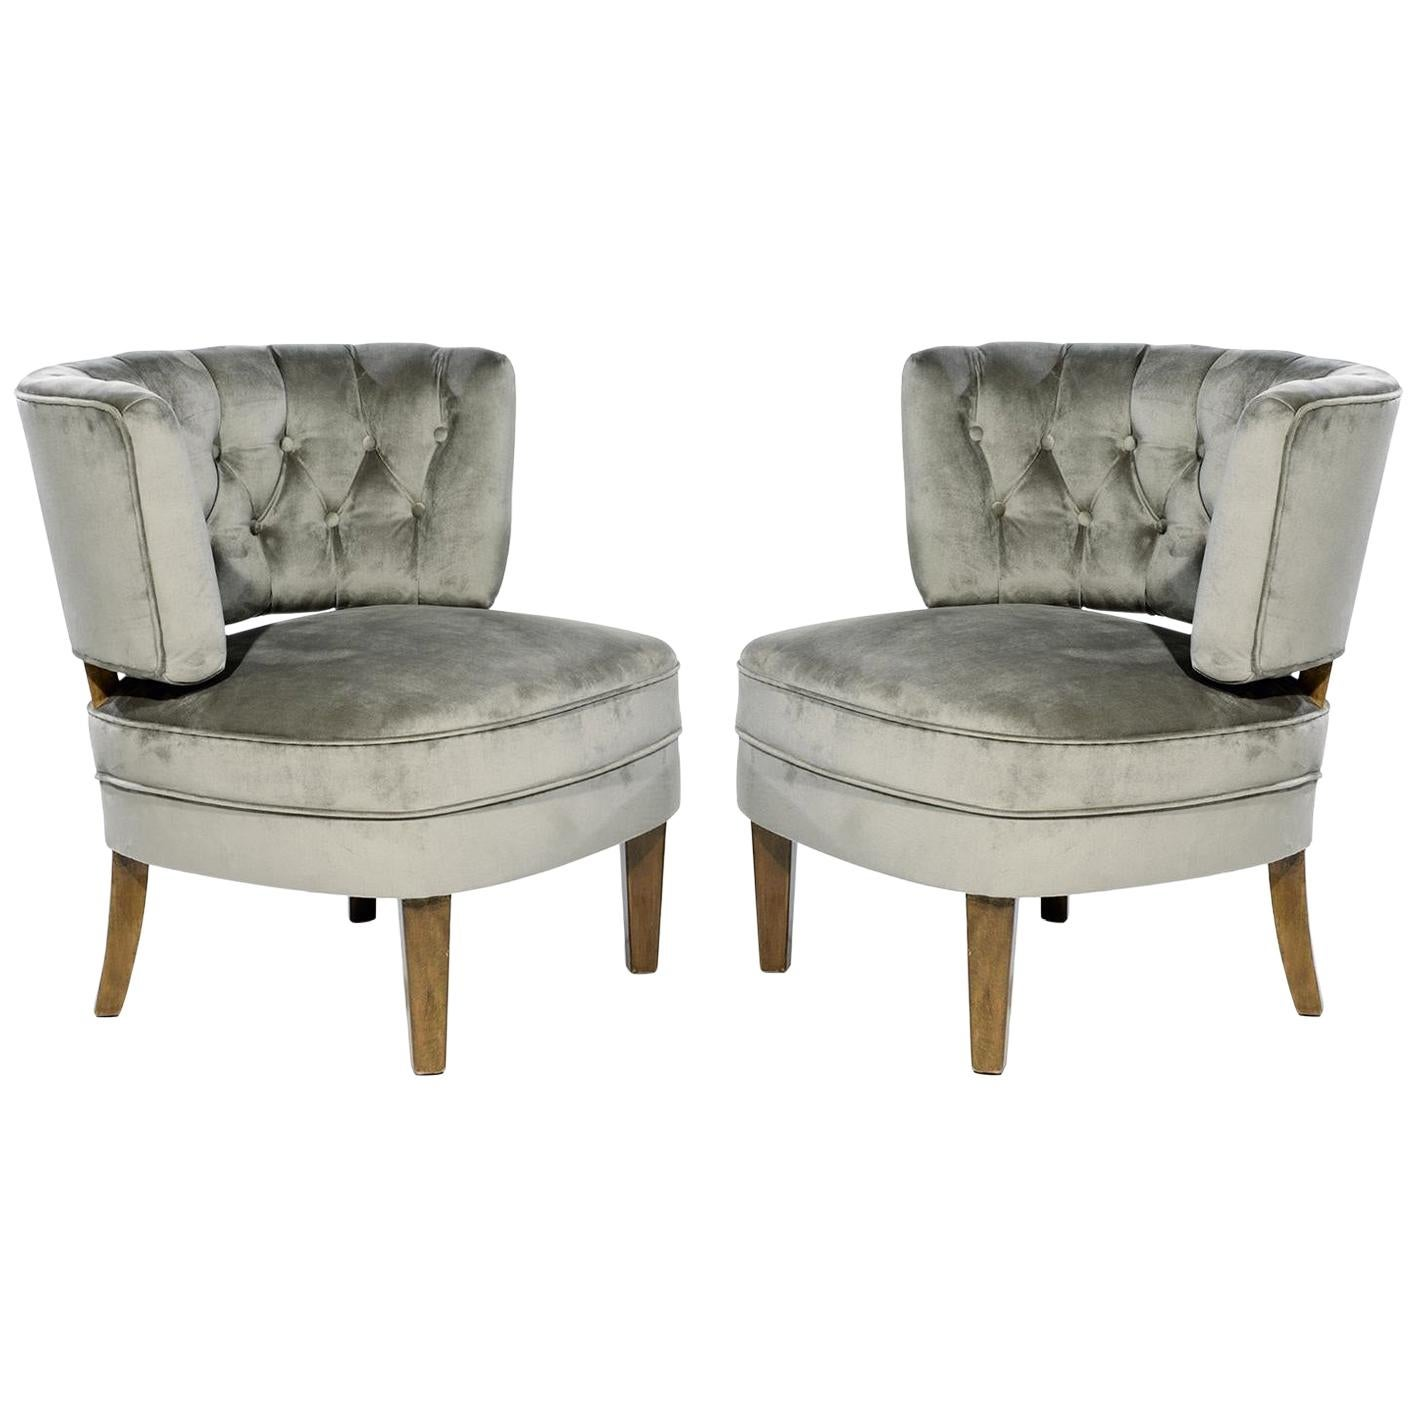 Pair of 1940s Otto Schulz Easy Chairs